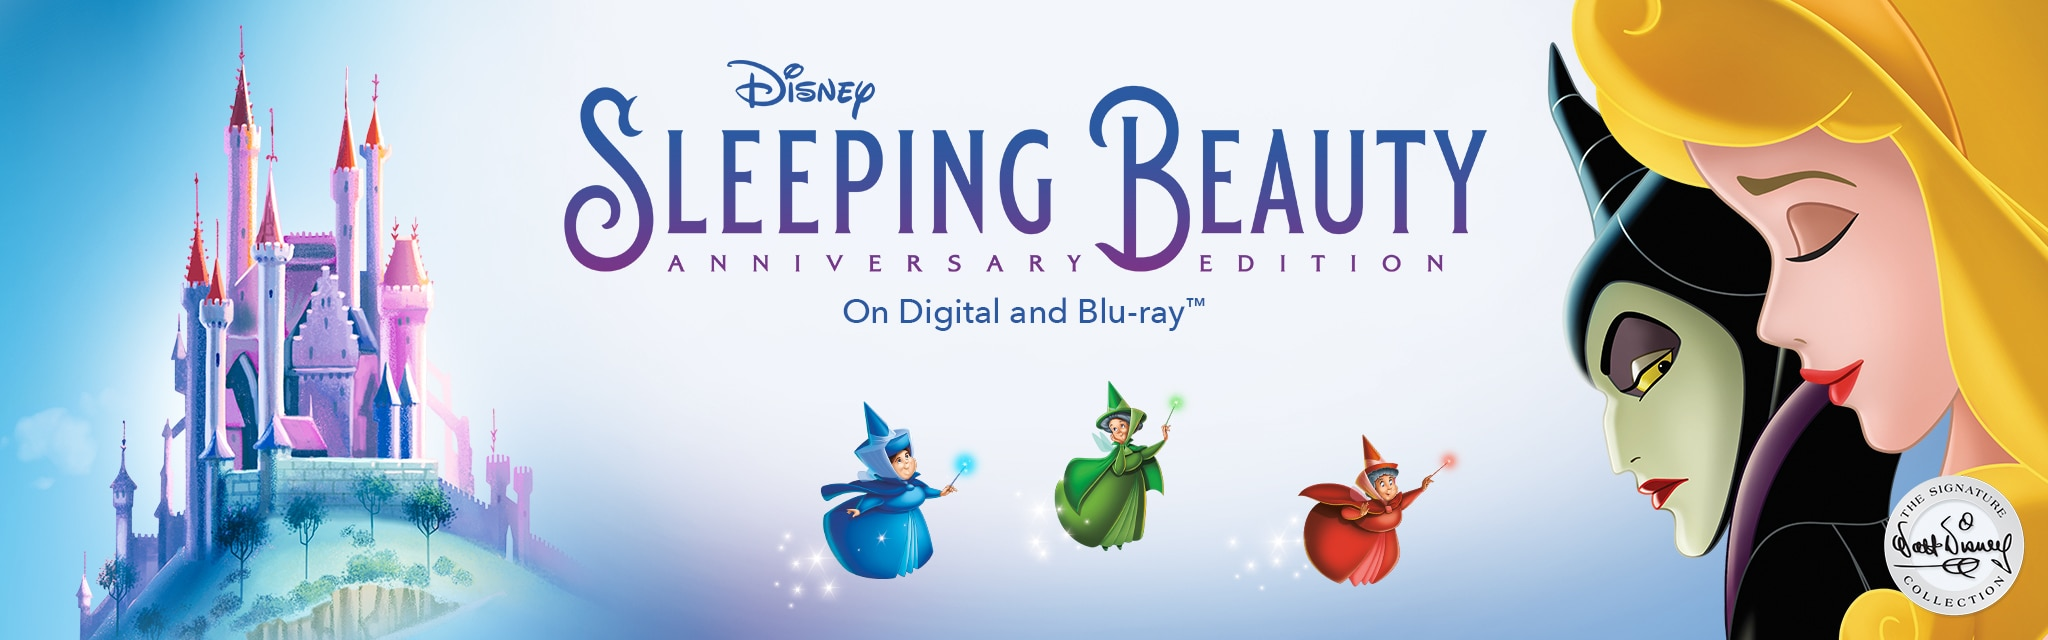 Disney Sleeping Beauty Anniversary Edition - On Digital and Blu-ray™